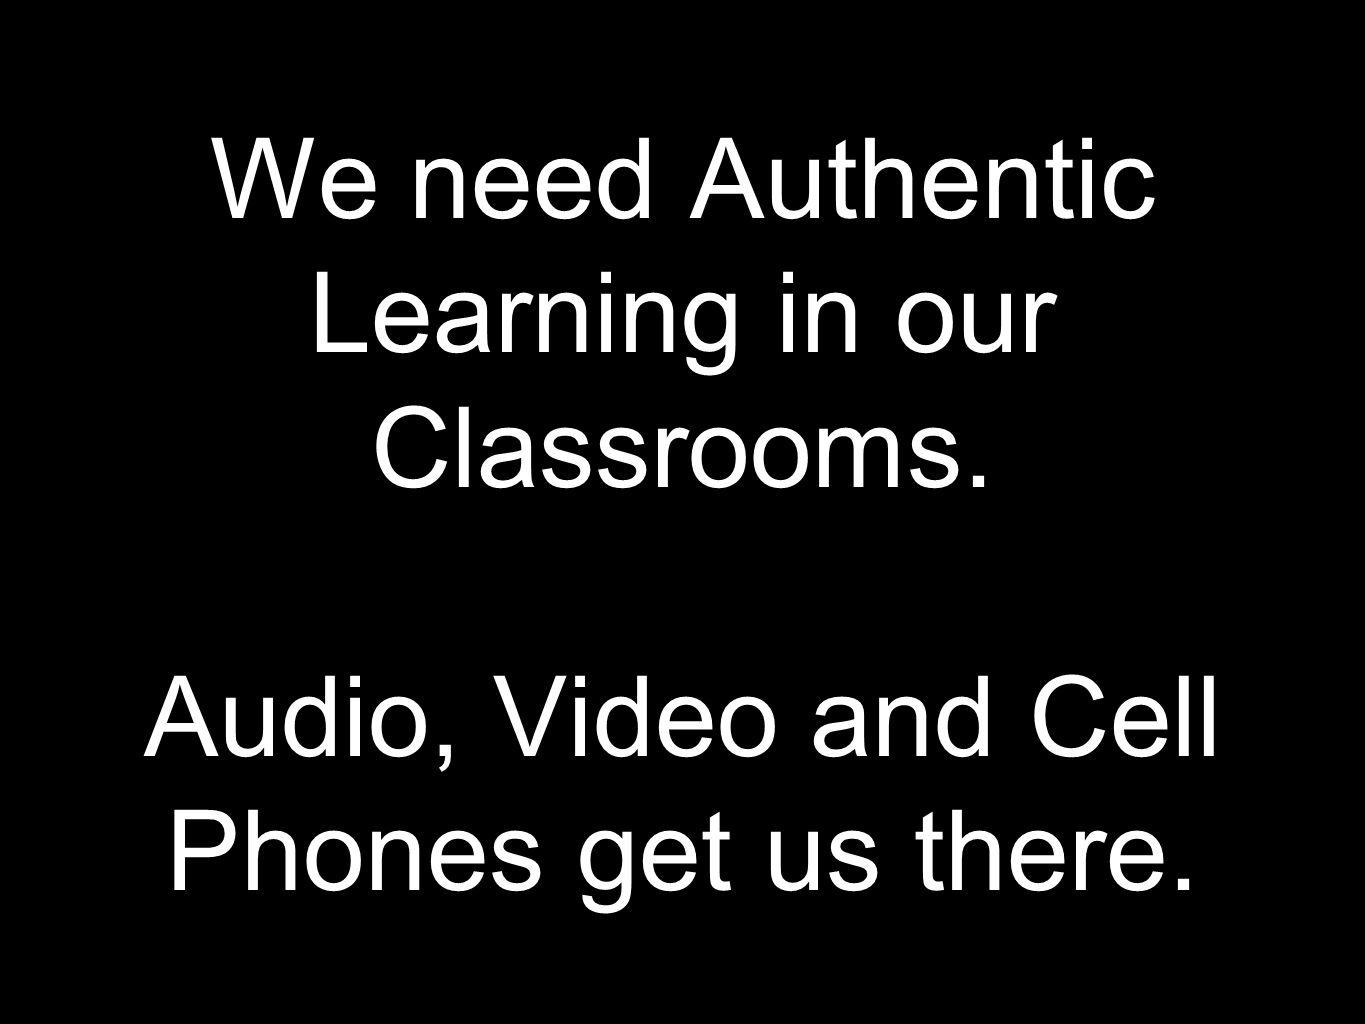 We need Authentic Learning in our Classrooms. Audio, Video and Cell Phones get us there.